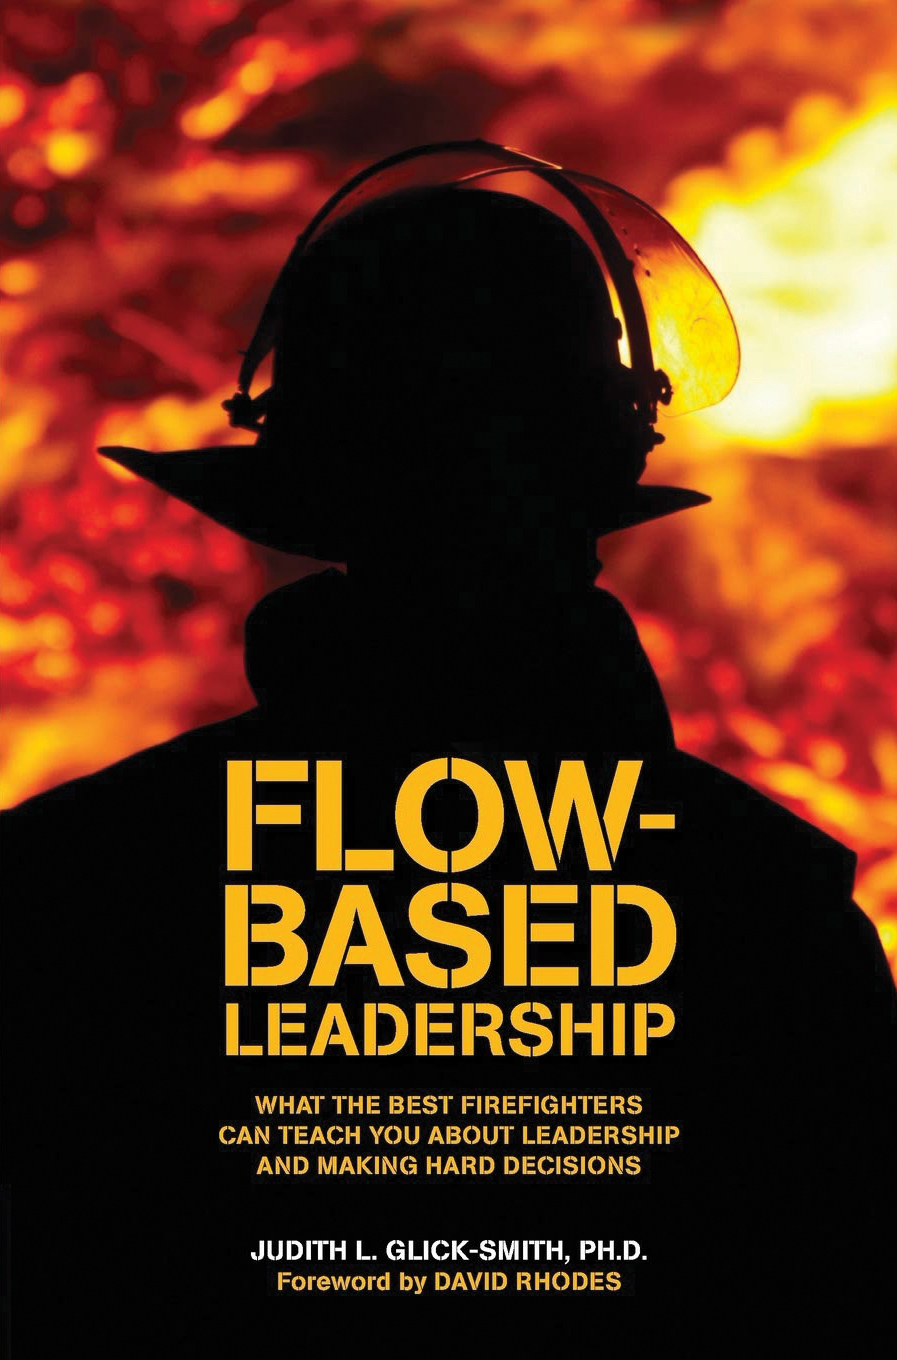 Book, Flow Based Leadership by Judith L. Glick-Smith, Ph.D.